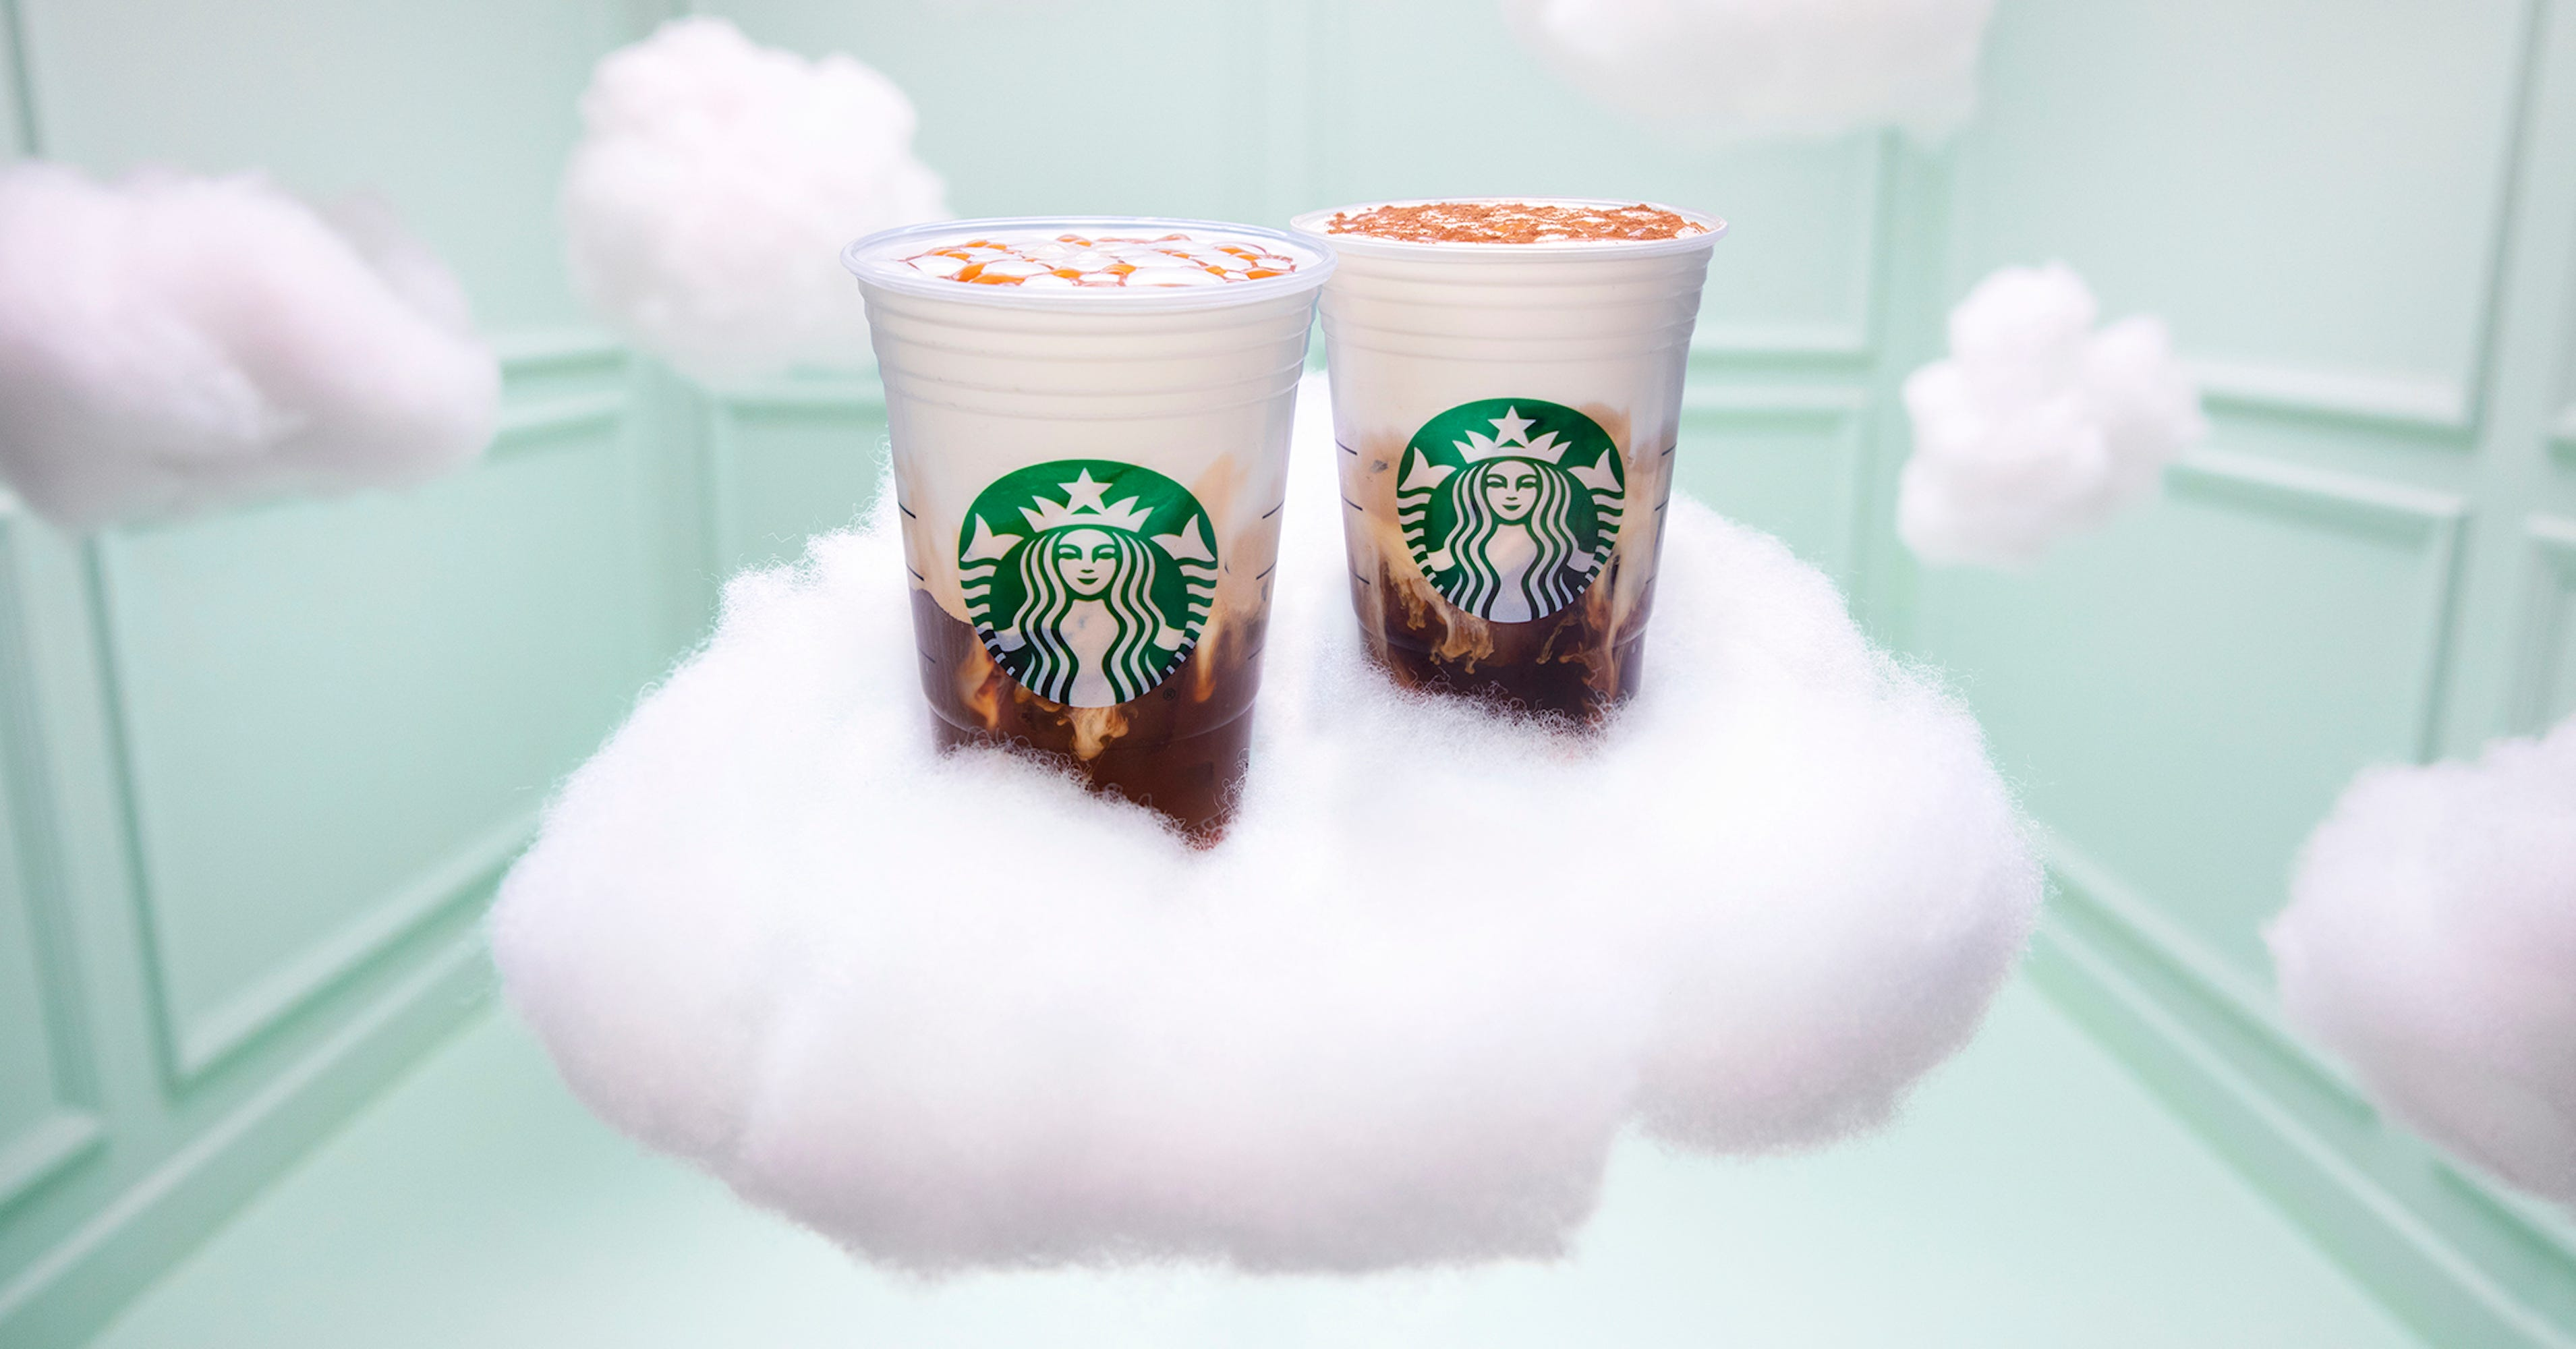 Starbucks Released The New Cloud Macchiato With Help From Ariana Grande